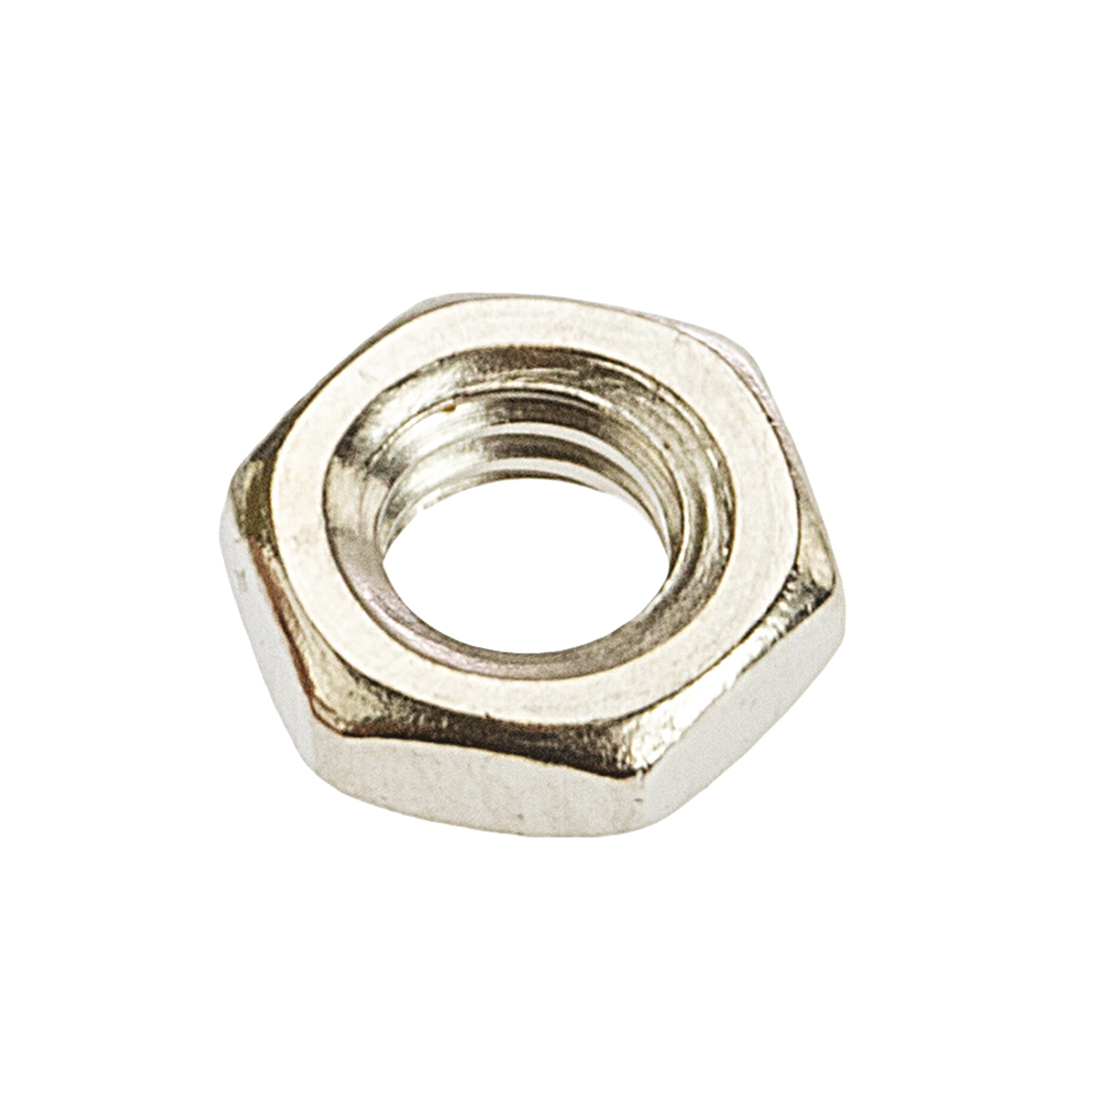 RS PRO Brass Half Hex Nut, Nickel Plated, M4 - 250 Pack